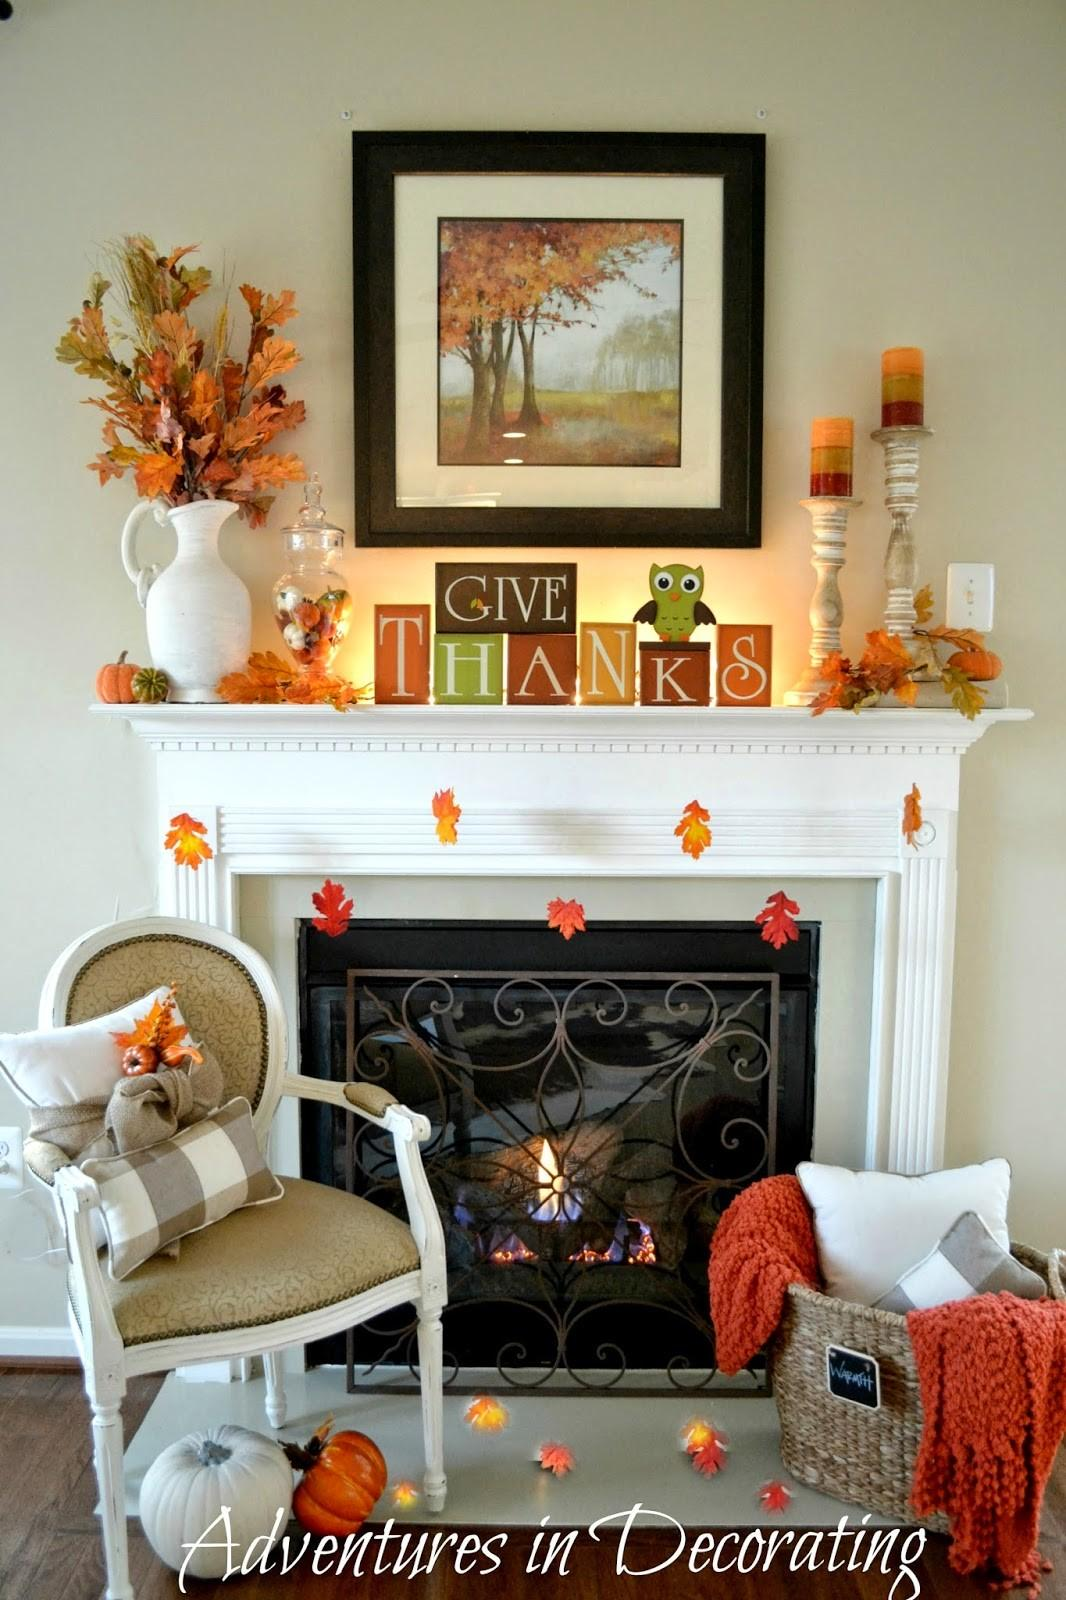 Adventures Decorating Our Simple Fall Mantel